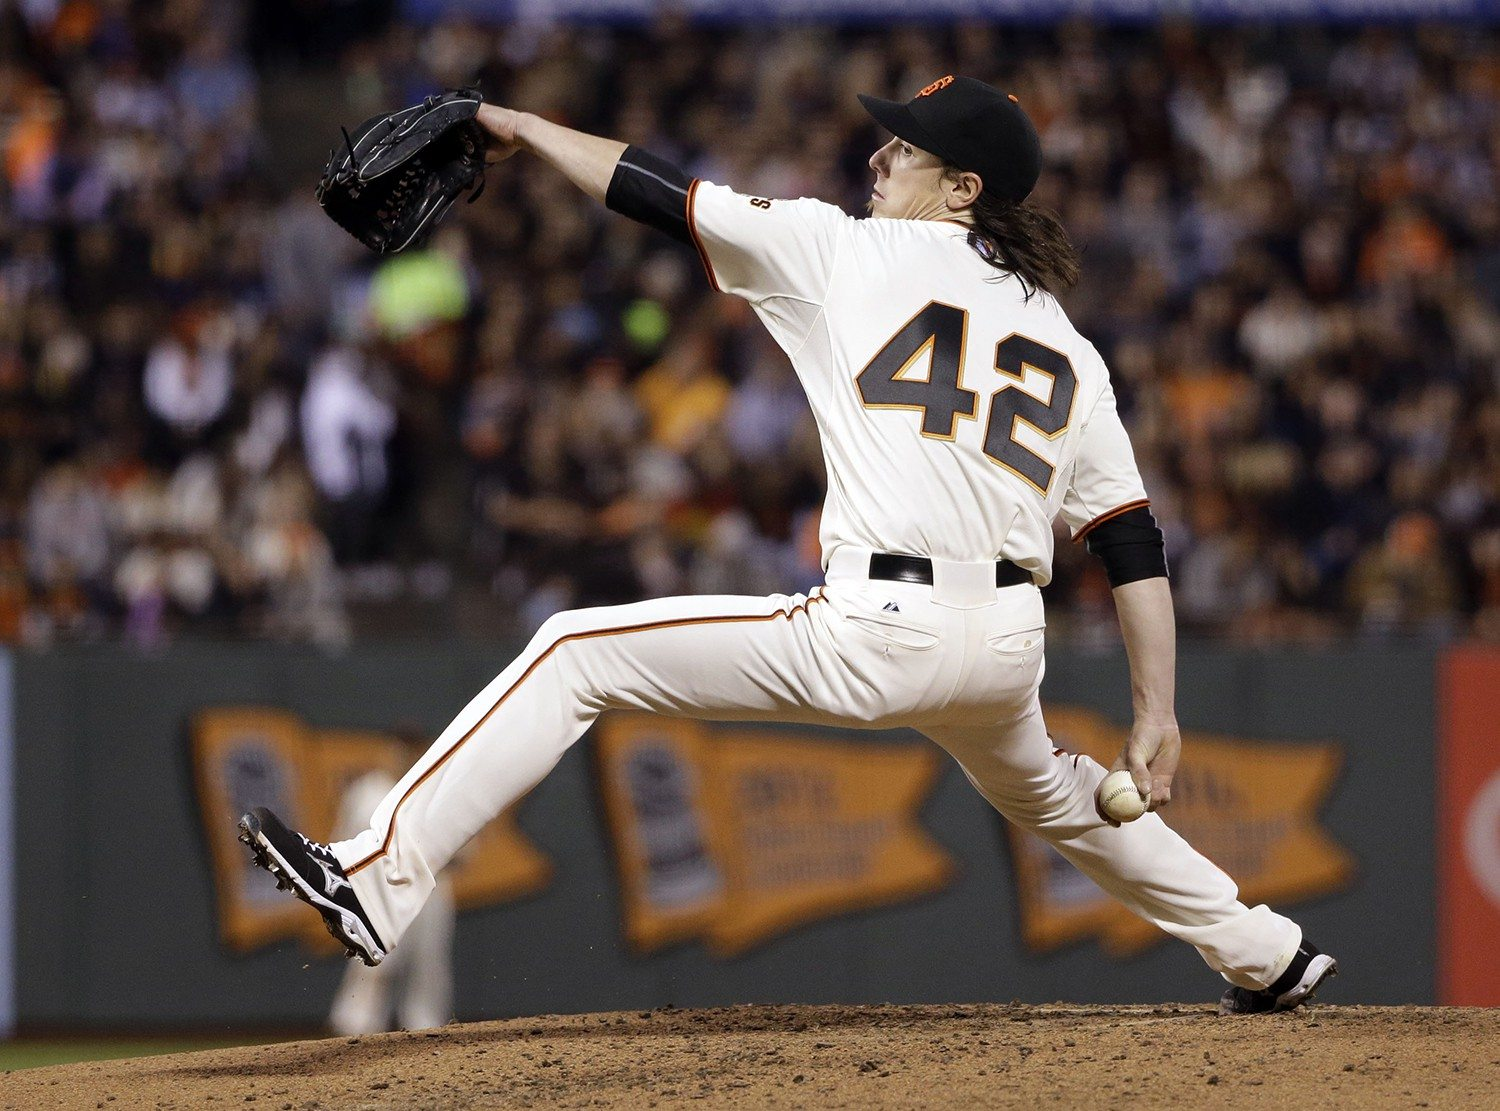 Marcio Jose Sanchez/APThe Giants' Tim Lincecum threw five innings and allowed three earned runs in Wednesday's 4-2 loss to the Rockies.